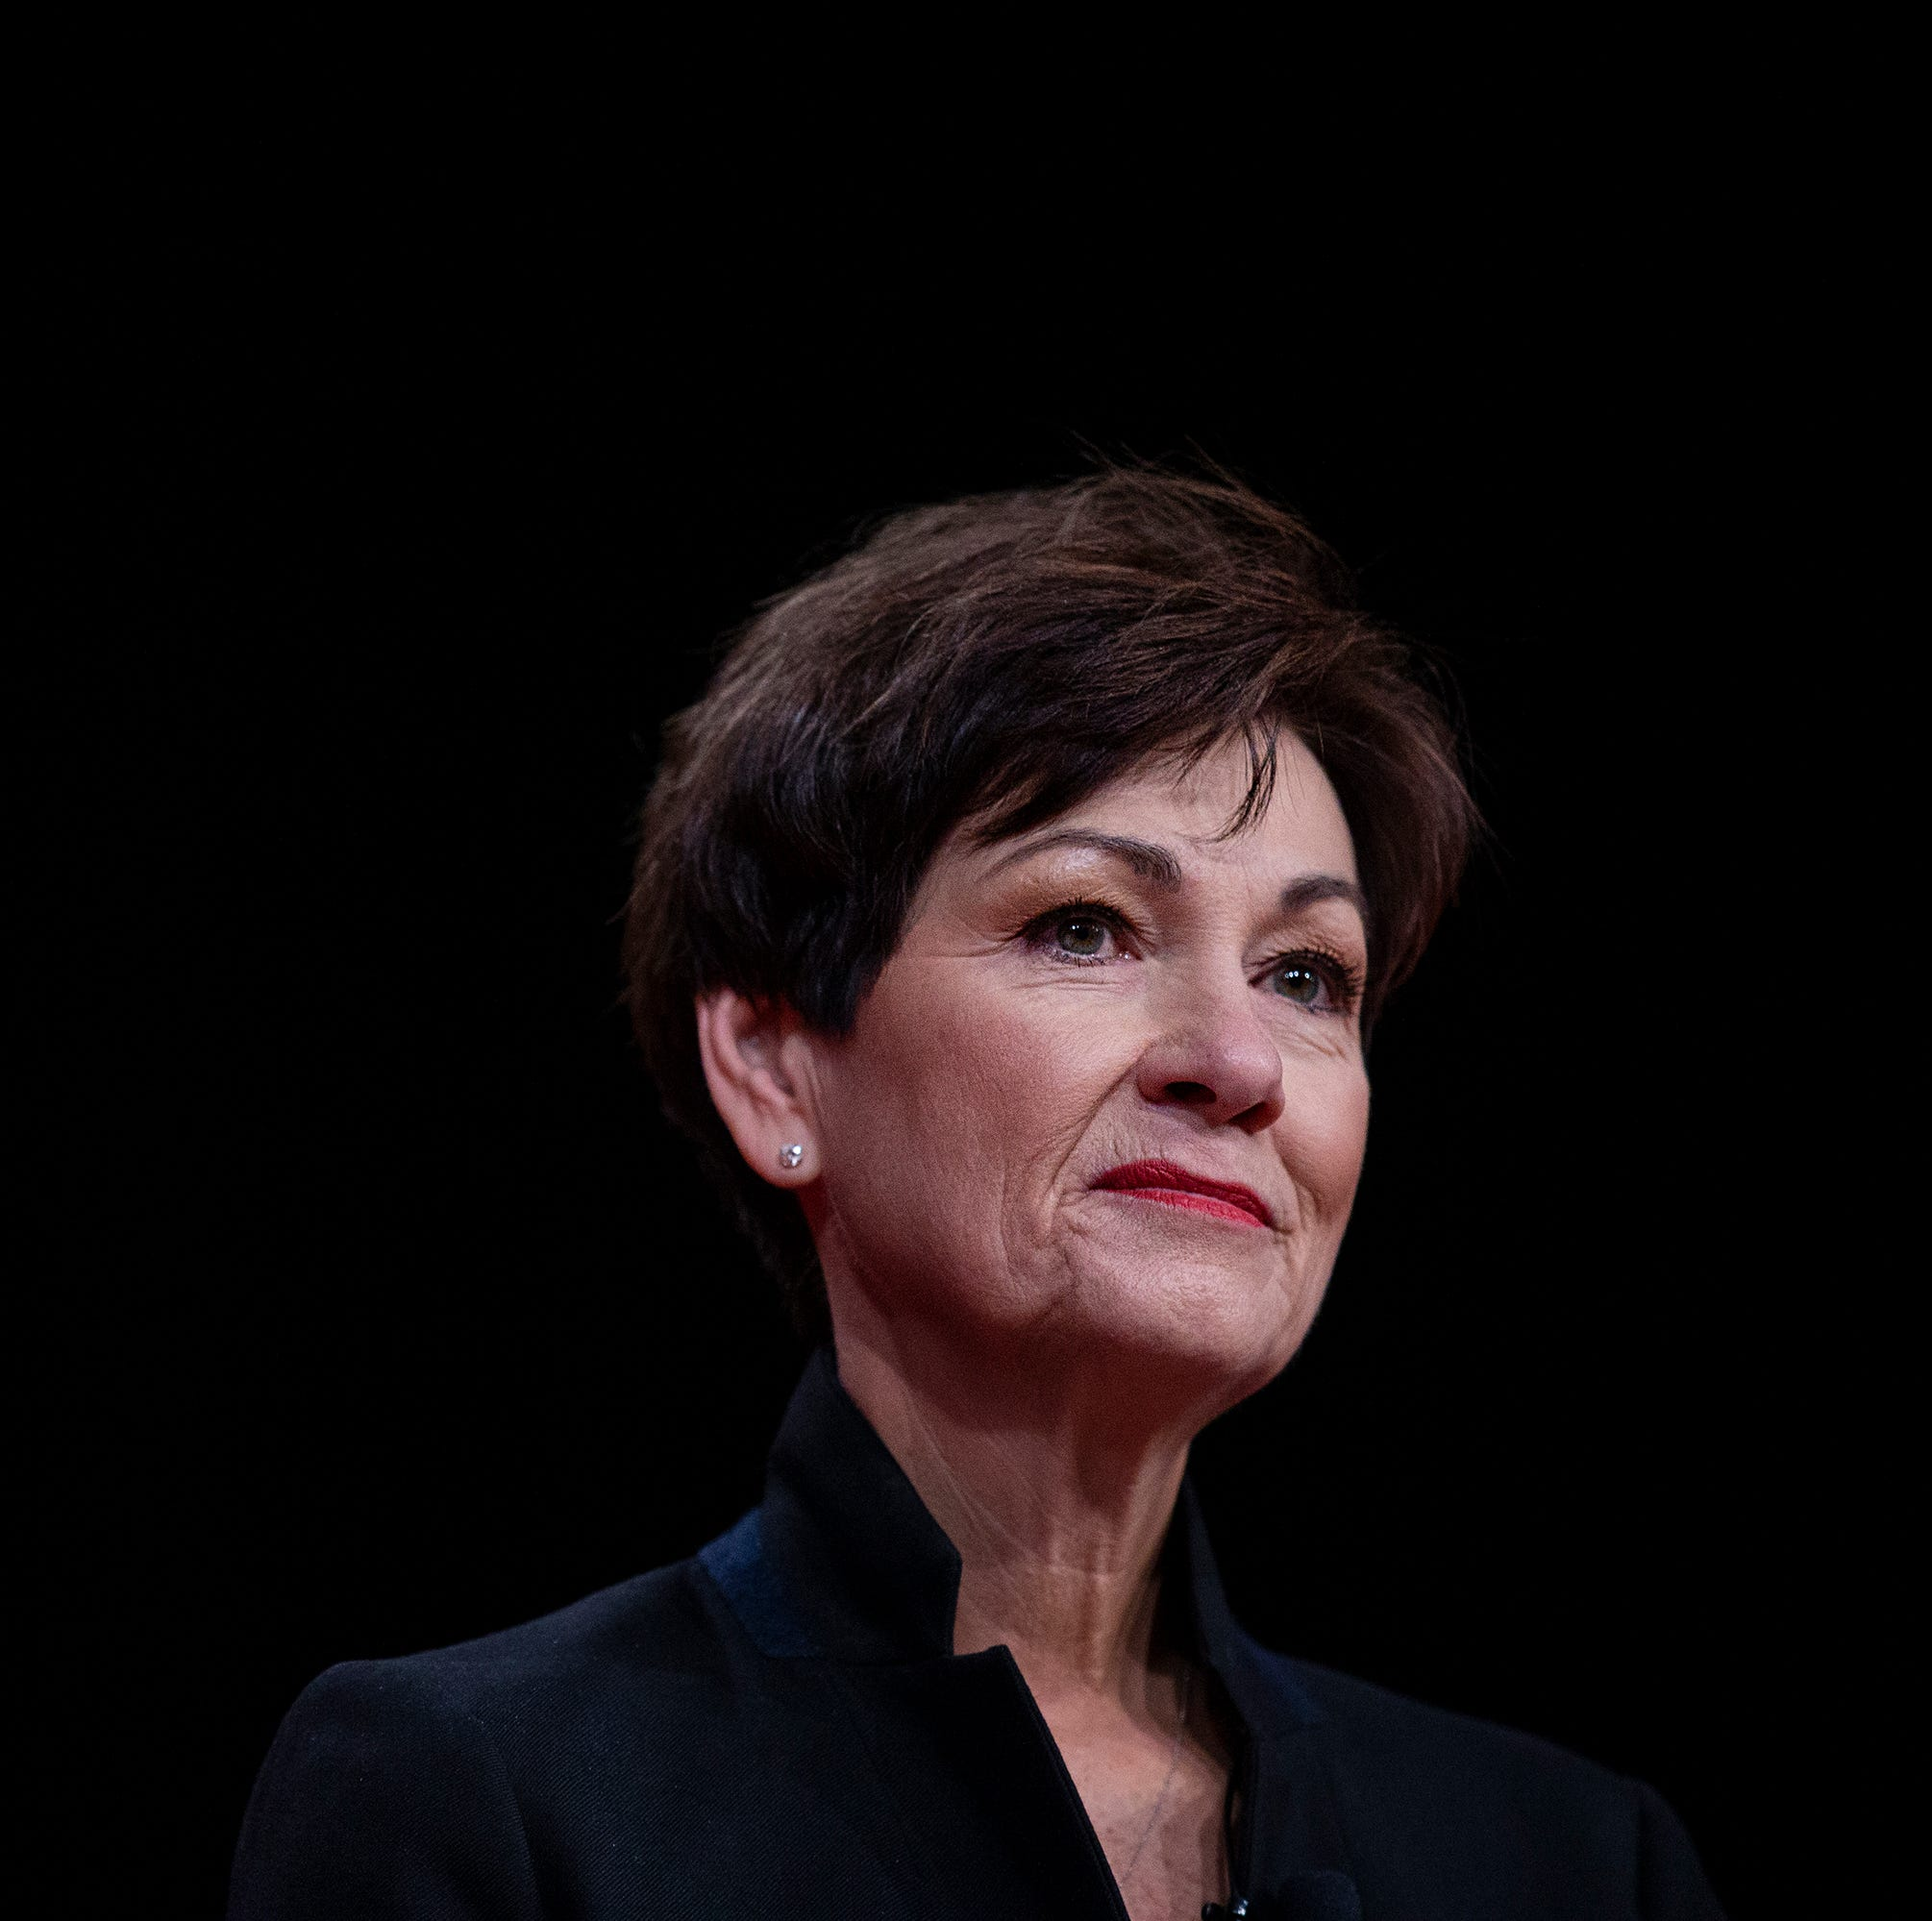 Kim Reynolds won't appeal ruling striking down 'fetal heartbeat' law